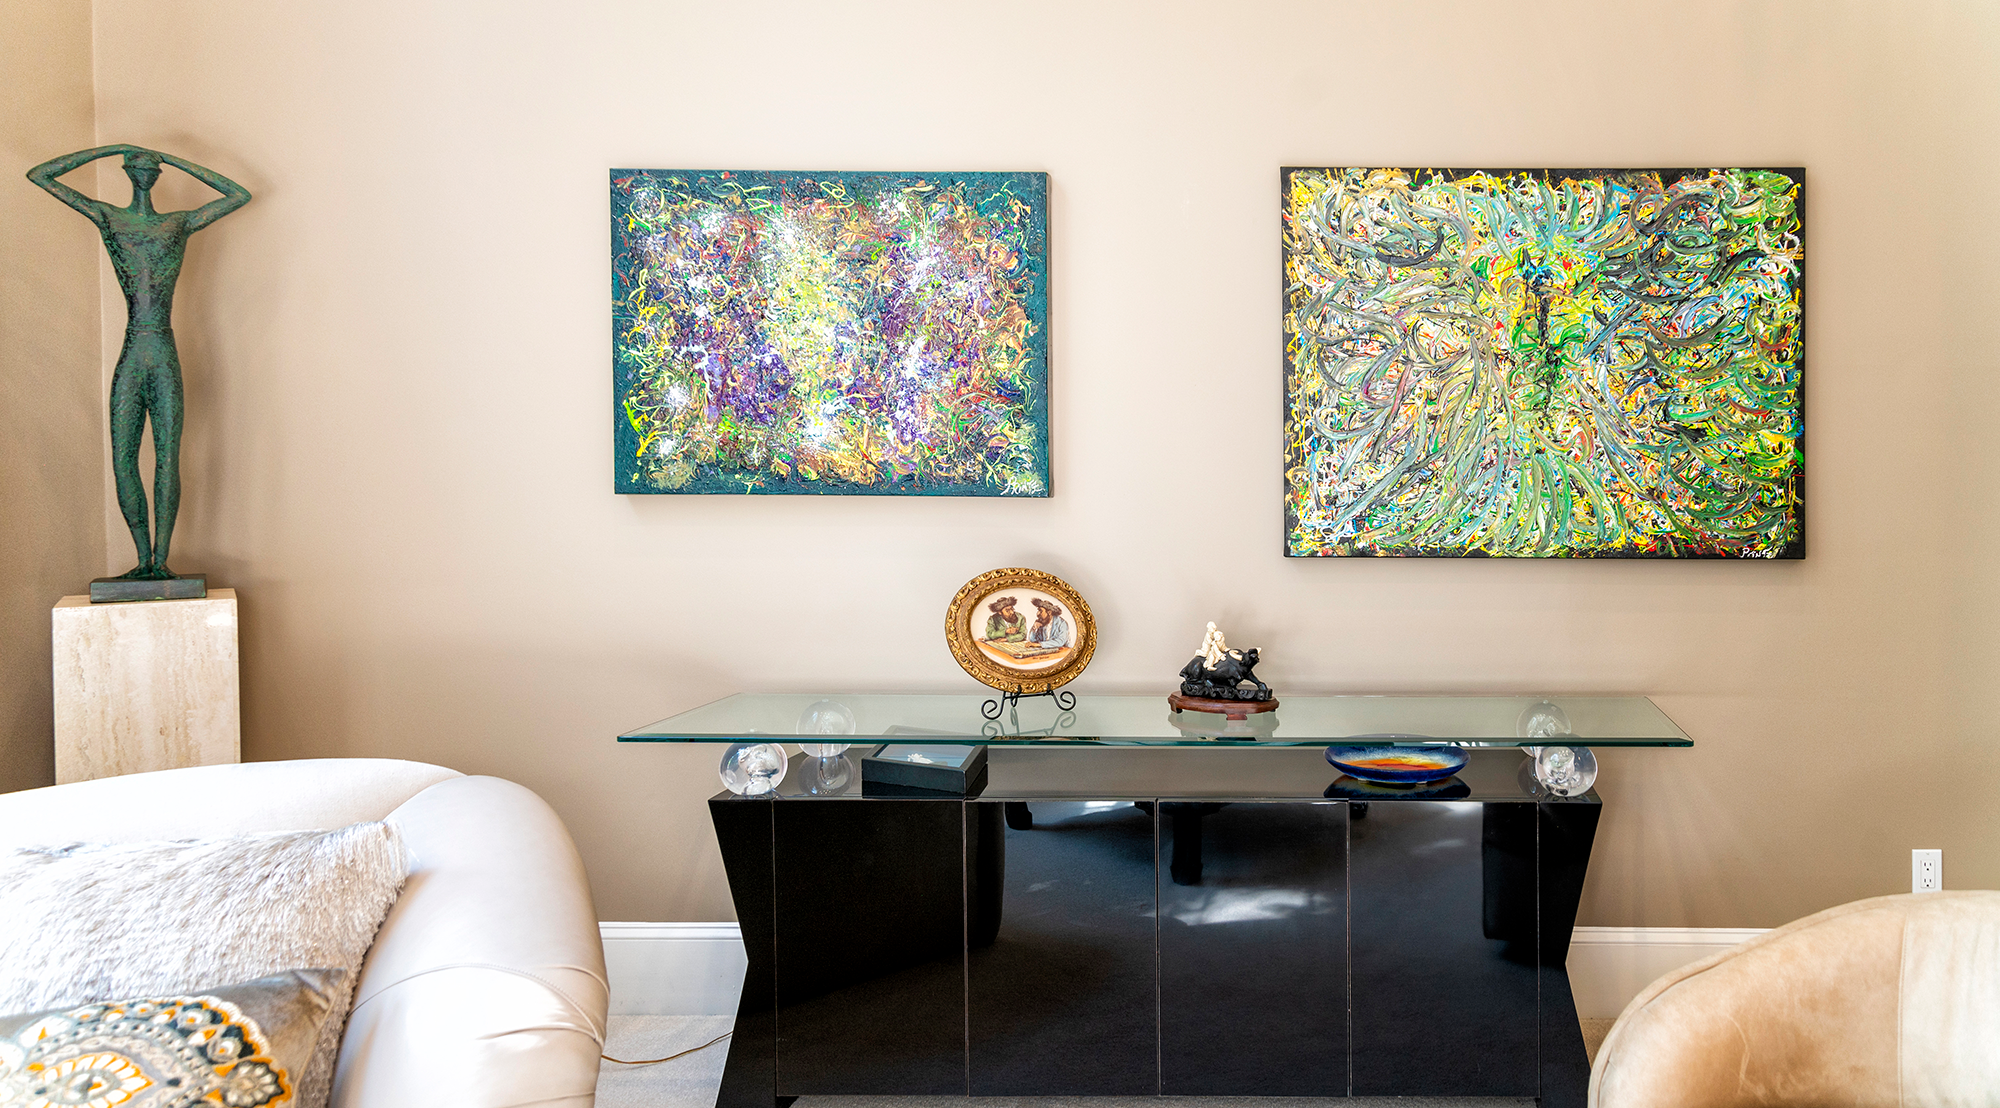 """Duane Stork // The north side of the living room is adorned by two of Printz's acrylics on canvas: 36-by-48 inch """"Blue Dog,"""" right, and 30-by-40 inch """"Lake,"""" left, both layered in the style of Jackson Pollock."""